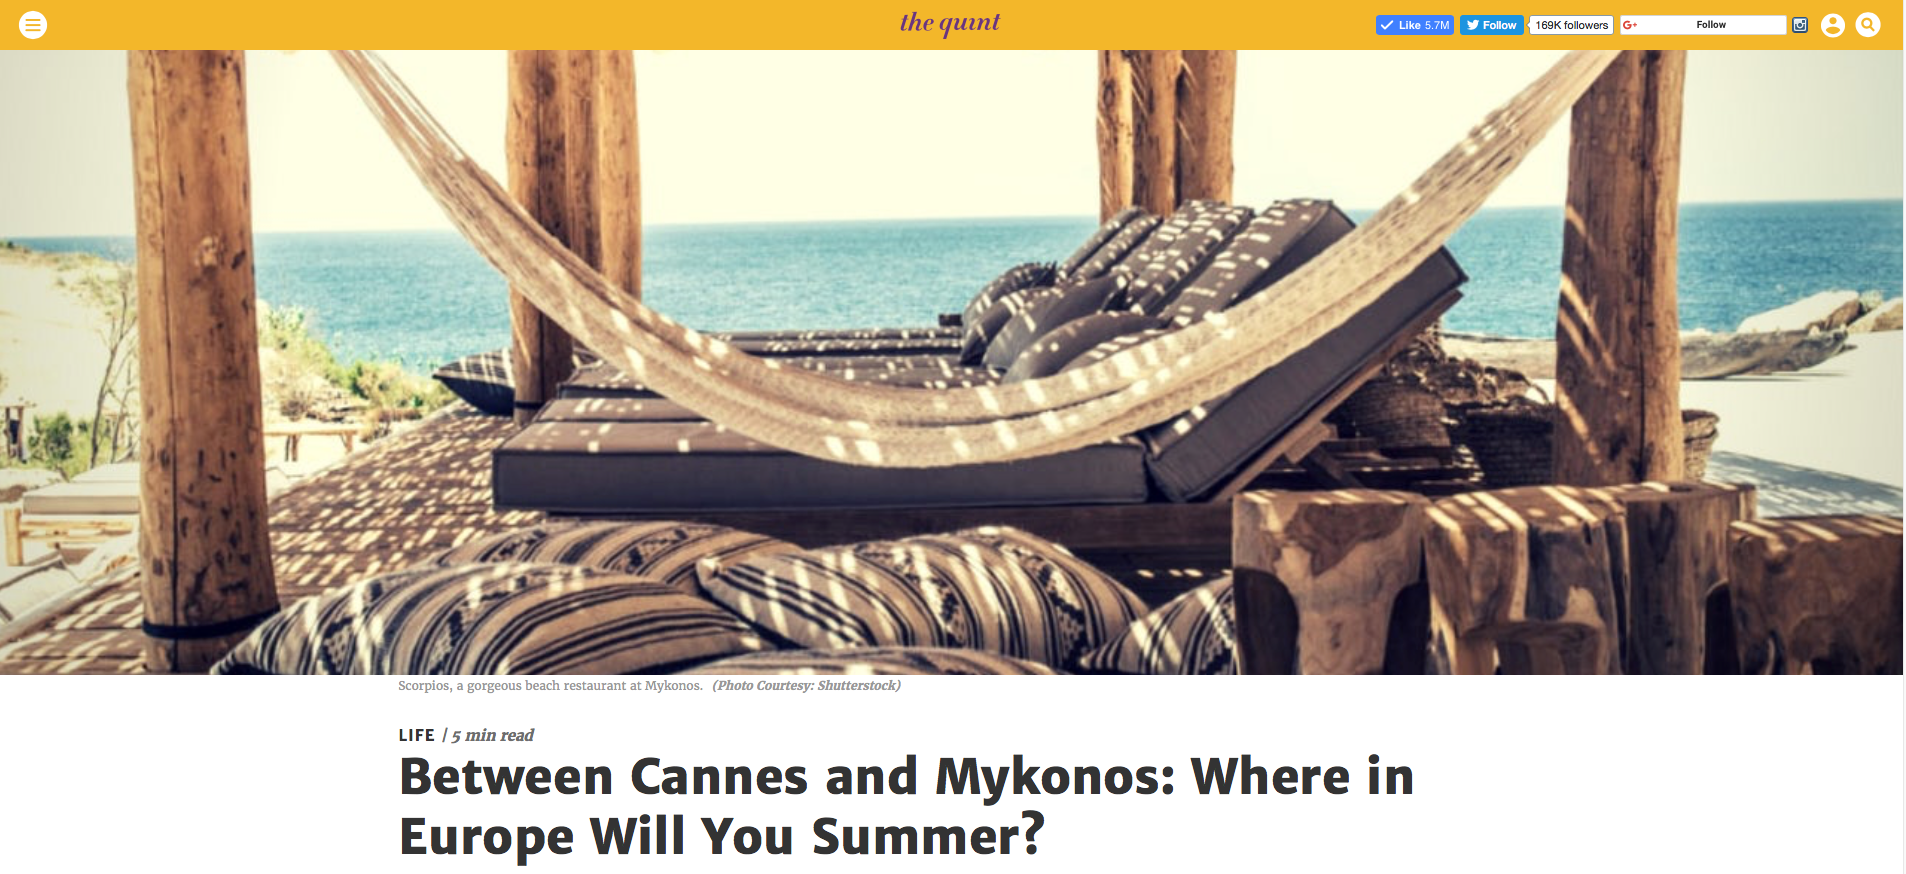 The Quint - Between Cannes and Mykonos: Where in Europe Will You Summer?